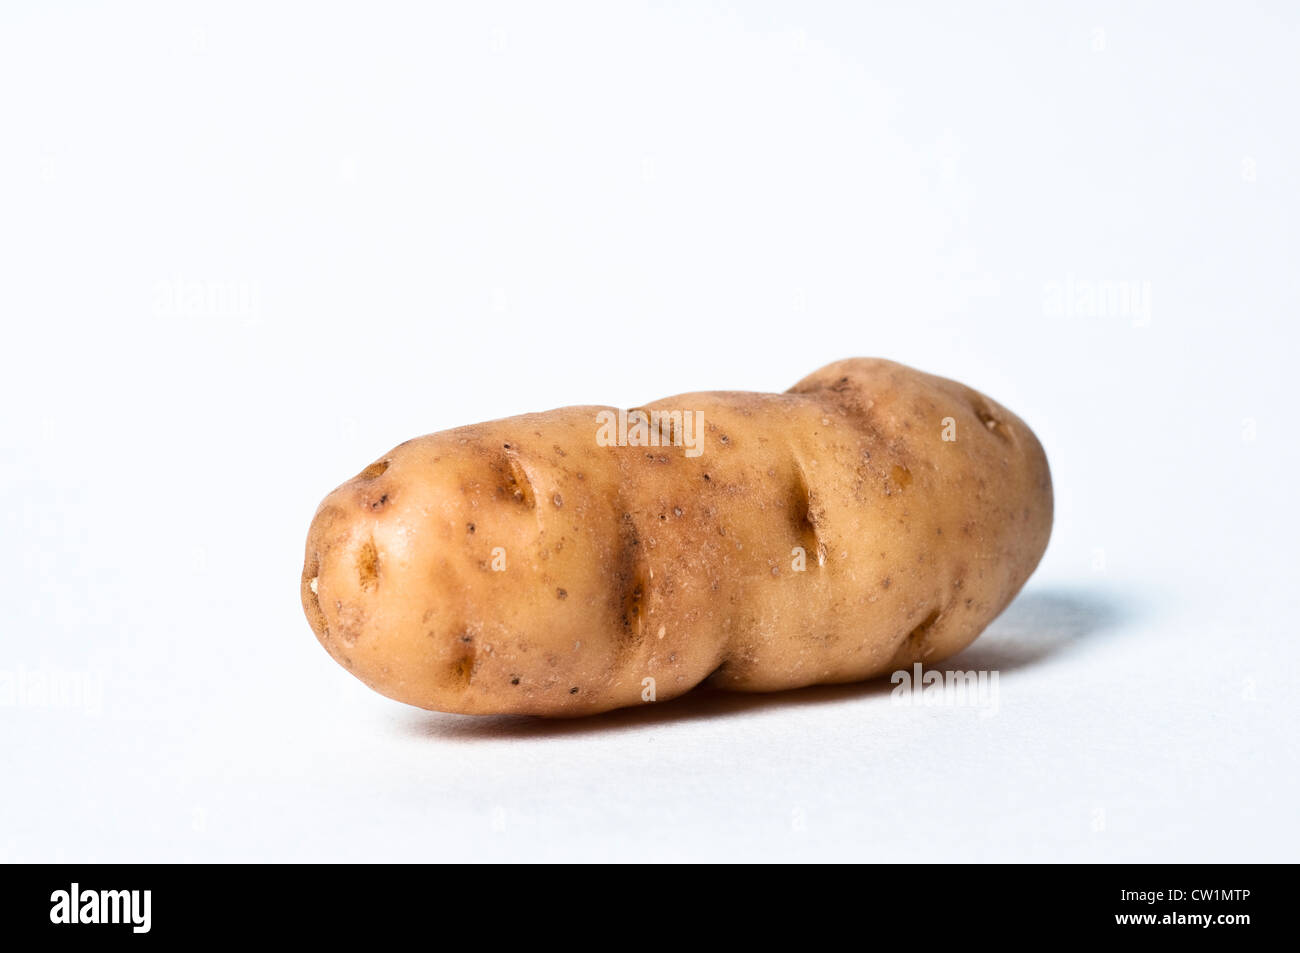 Anya potato - Stock Image